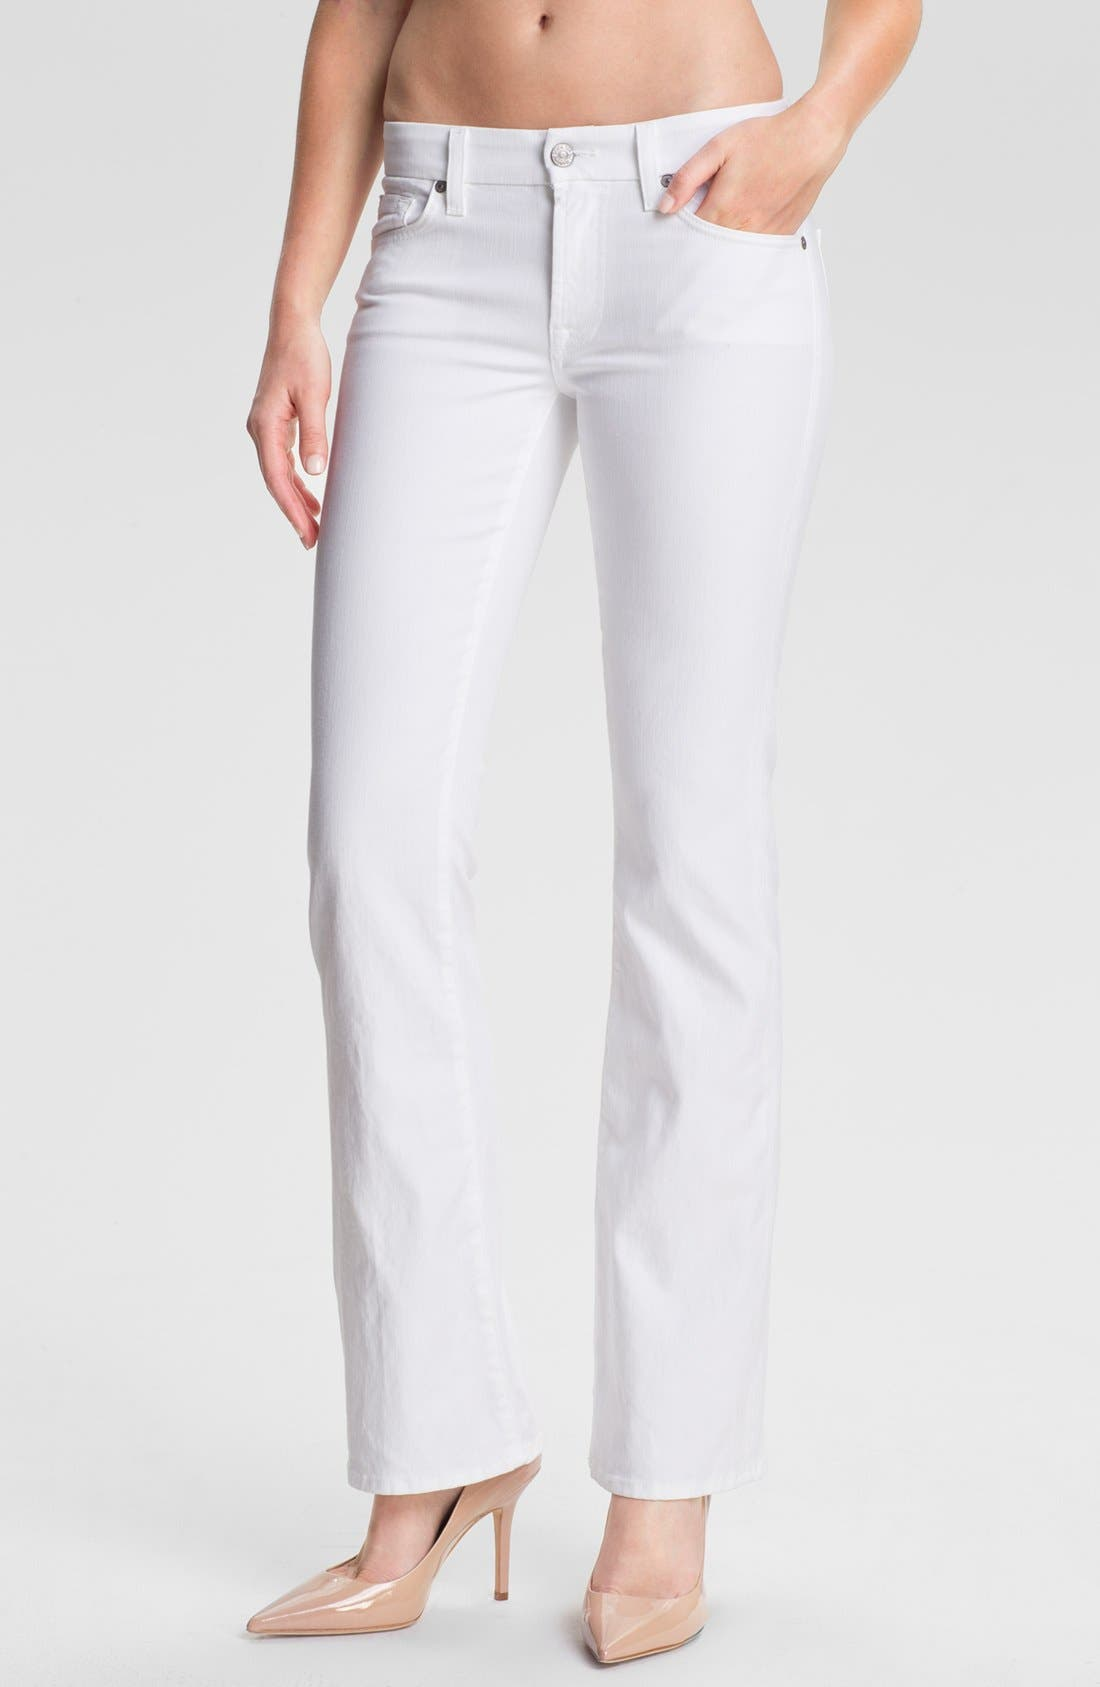 Alternate Image 1 Selected - 7 For All Mankind® 'Kimmie' Bootcut Jeans (Clean White)